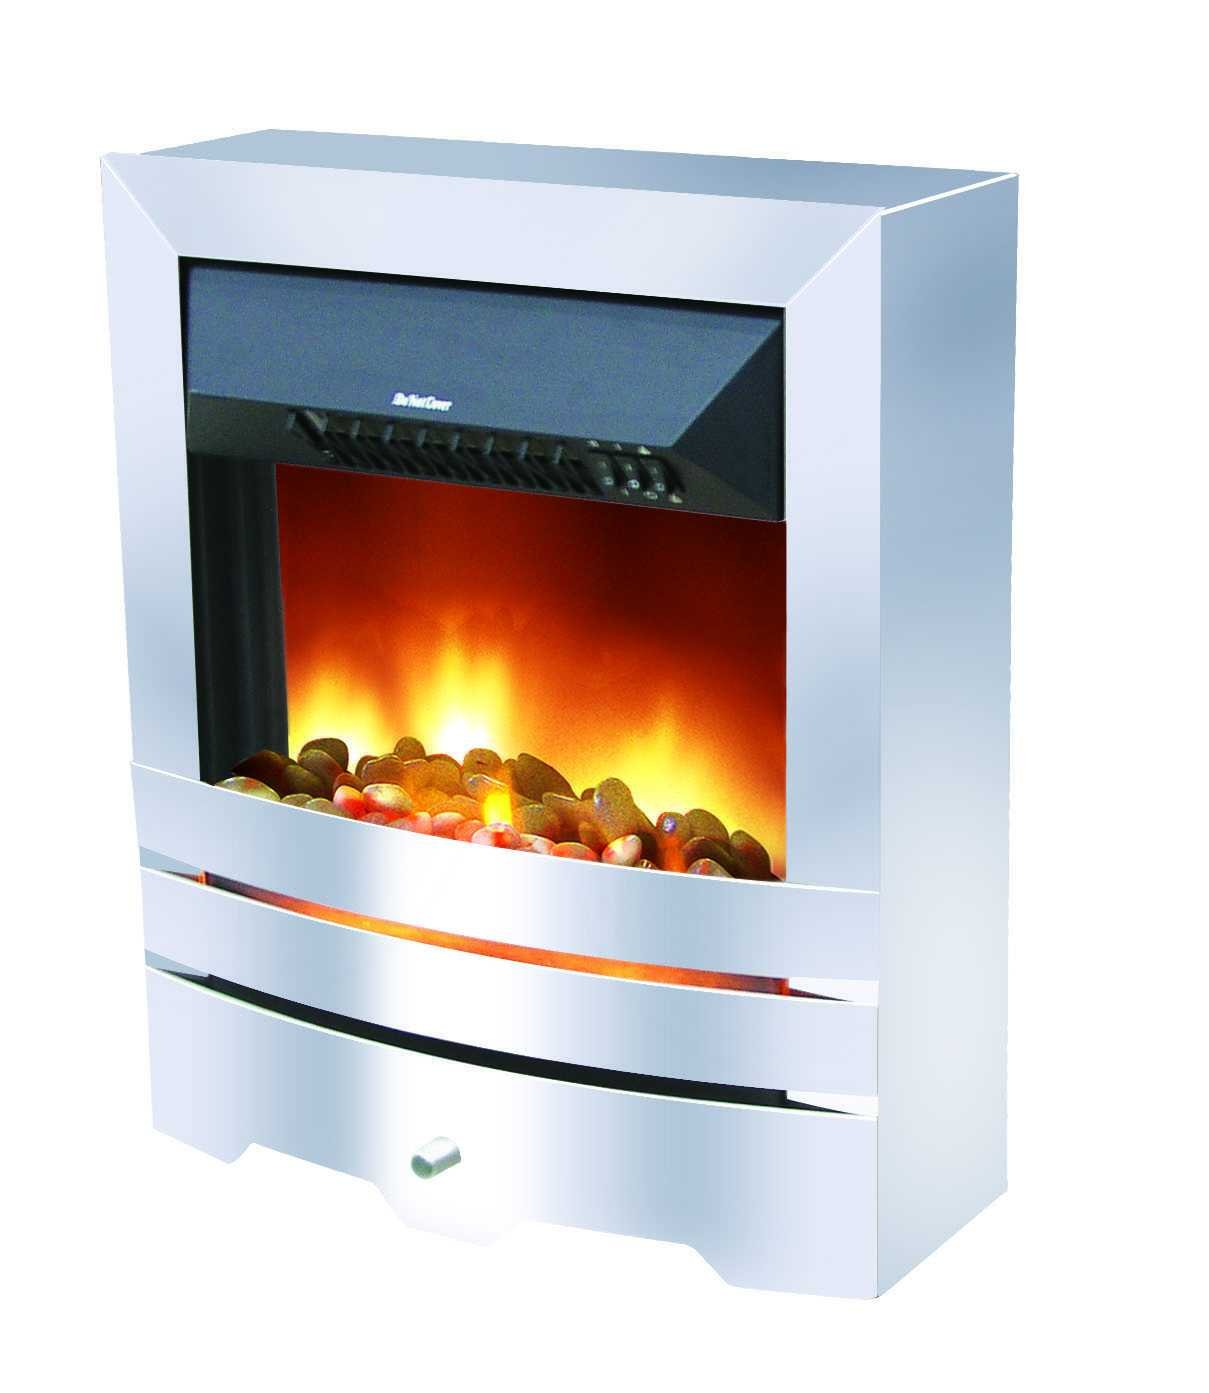 Kingavon BB CH602 Free Standing/ Inset Electric Fire       review and more information